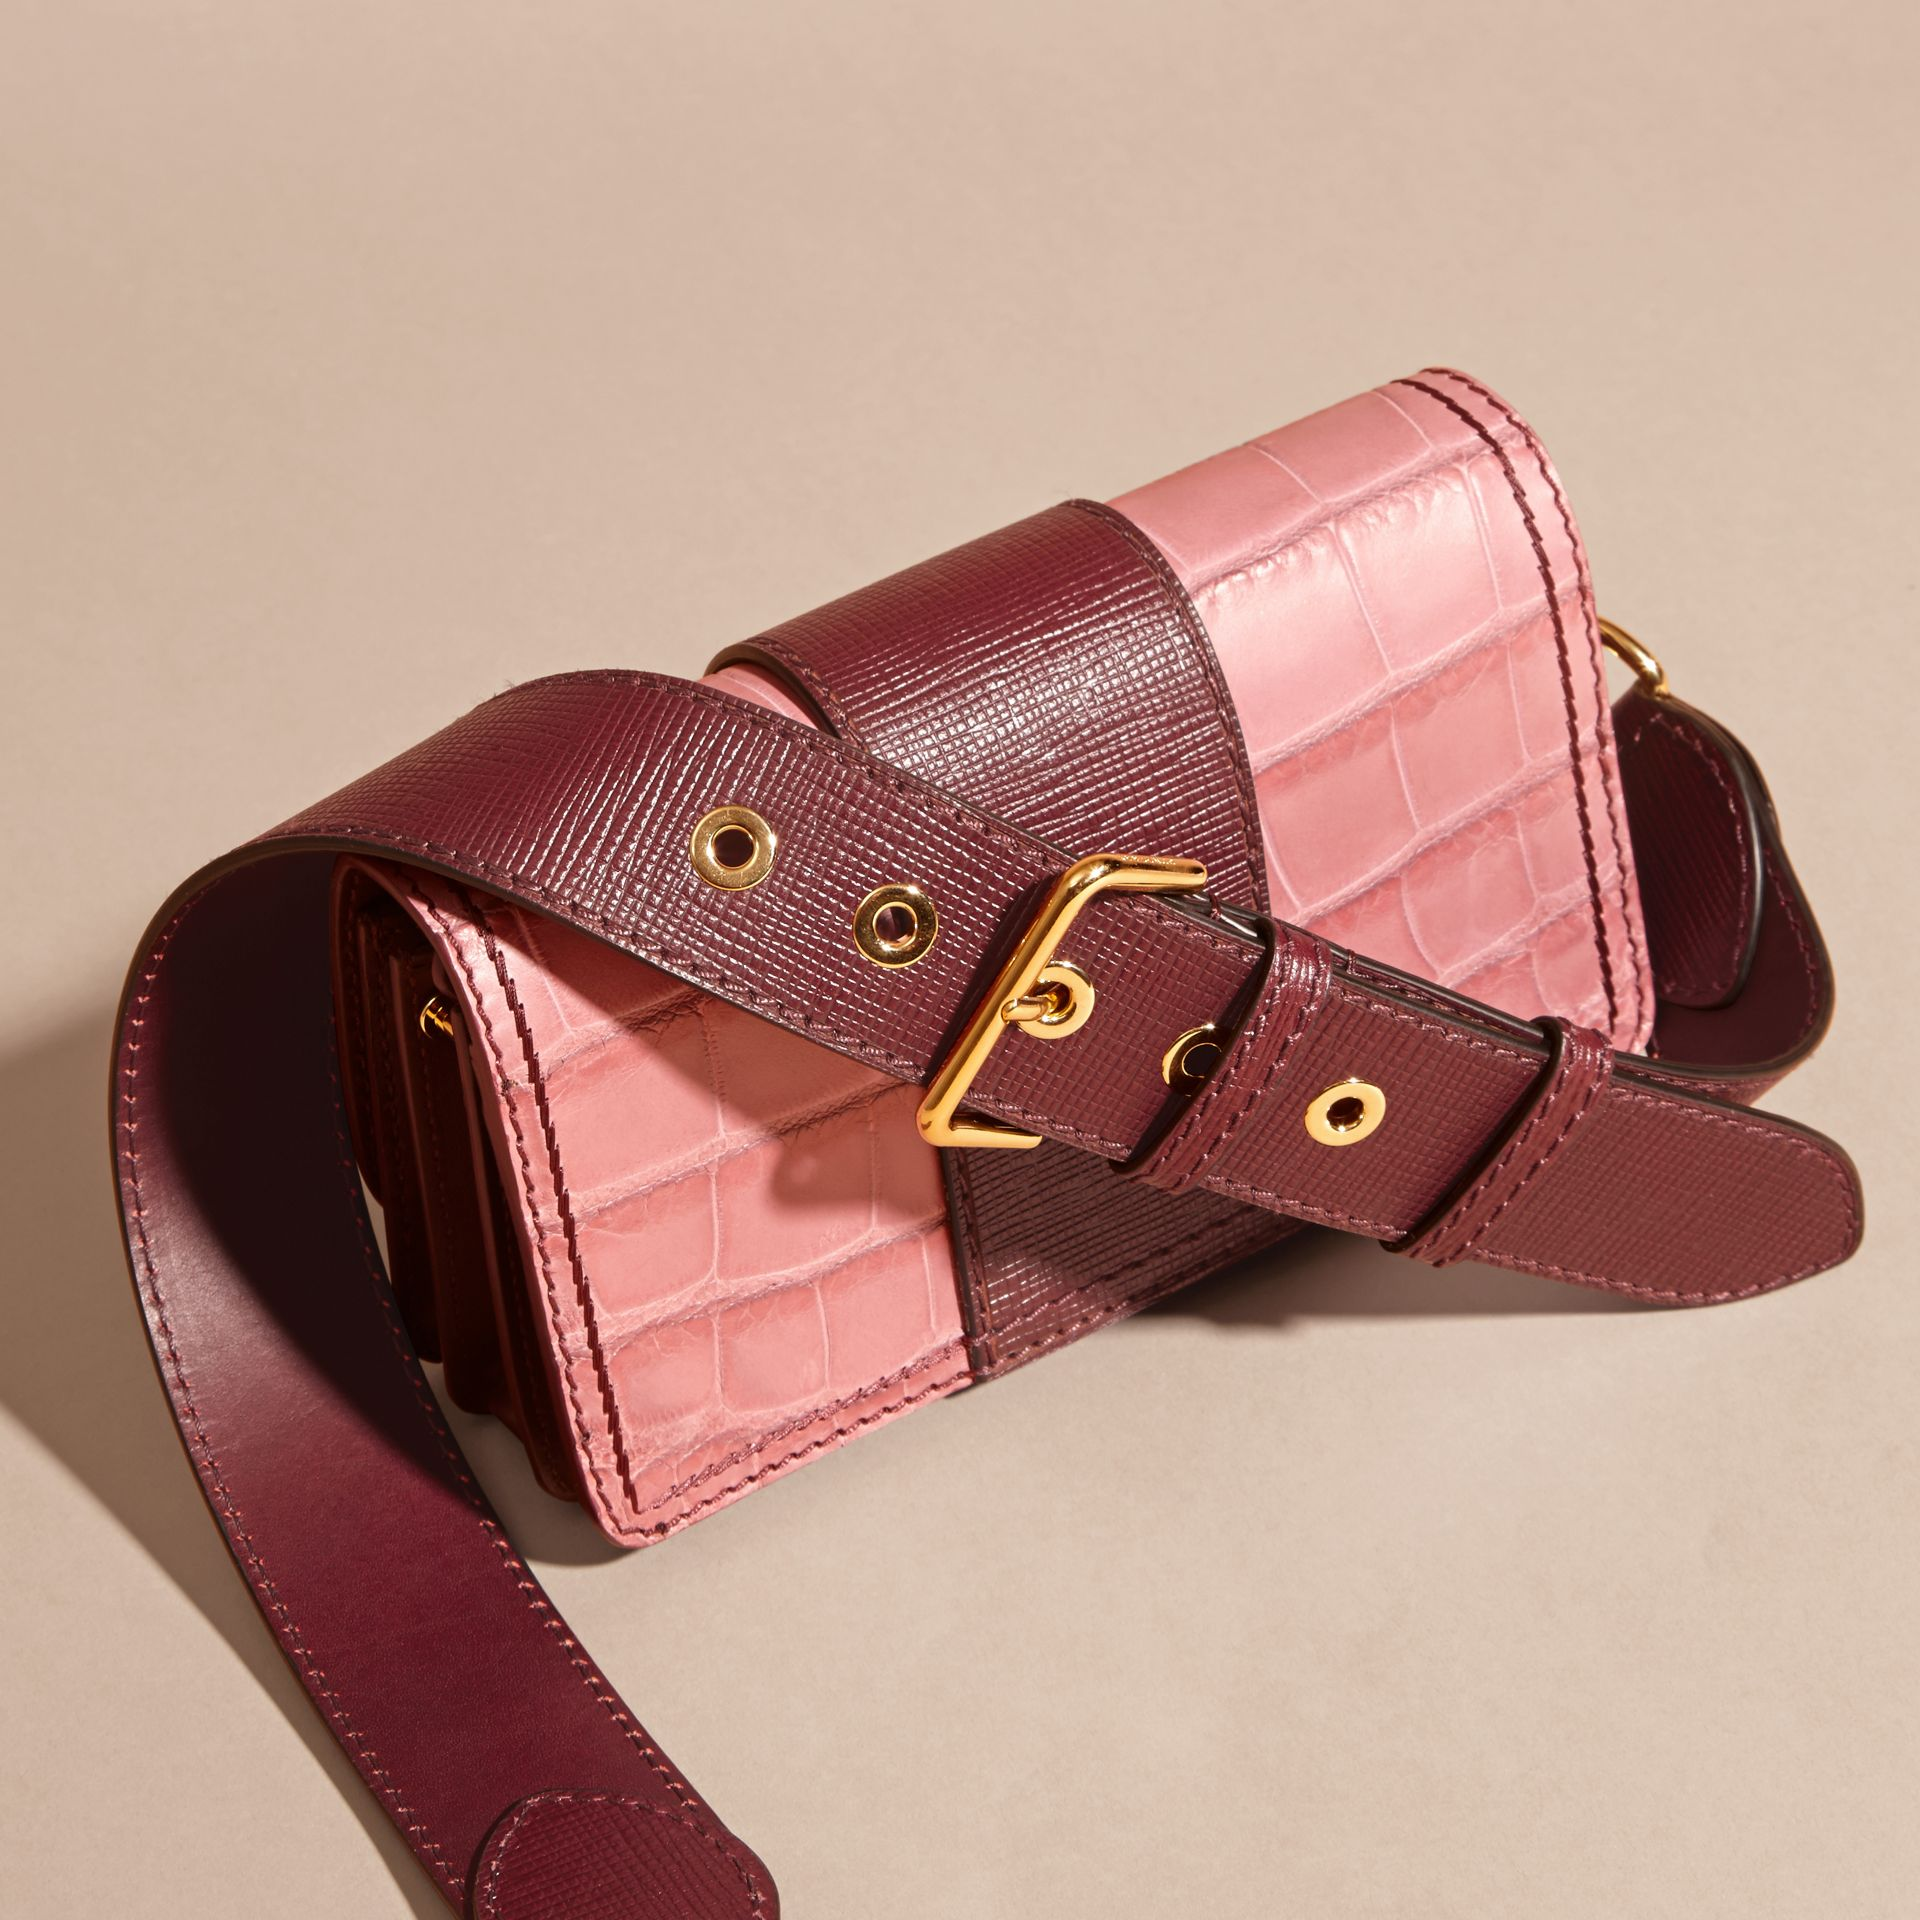 The Small Buckle Bag in Alligator and Leather in Dusky Pink/ Burgundy - Women | Burberry Australia - gallery image 5